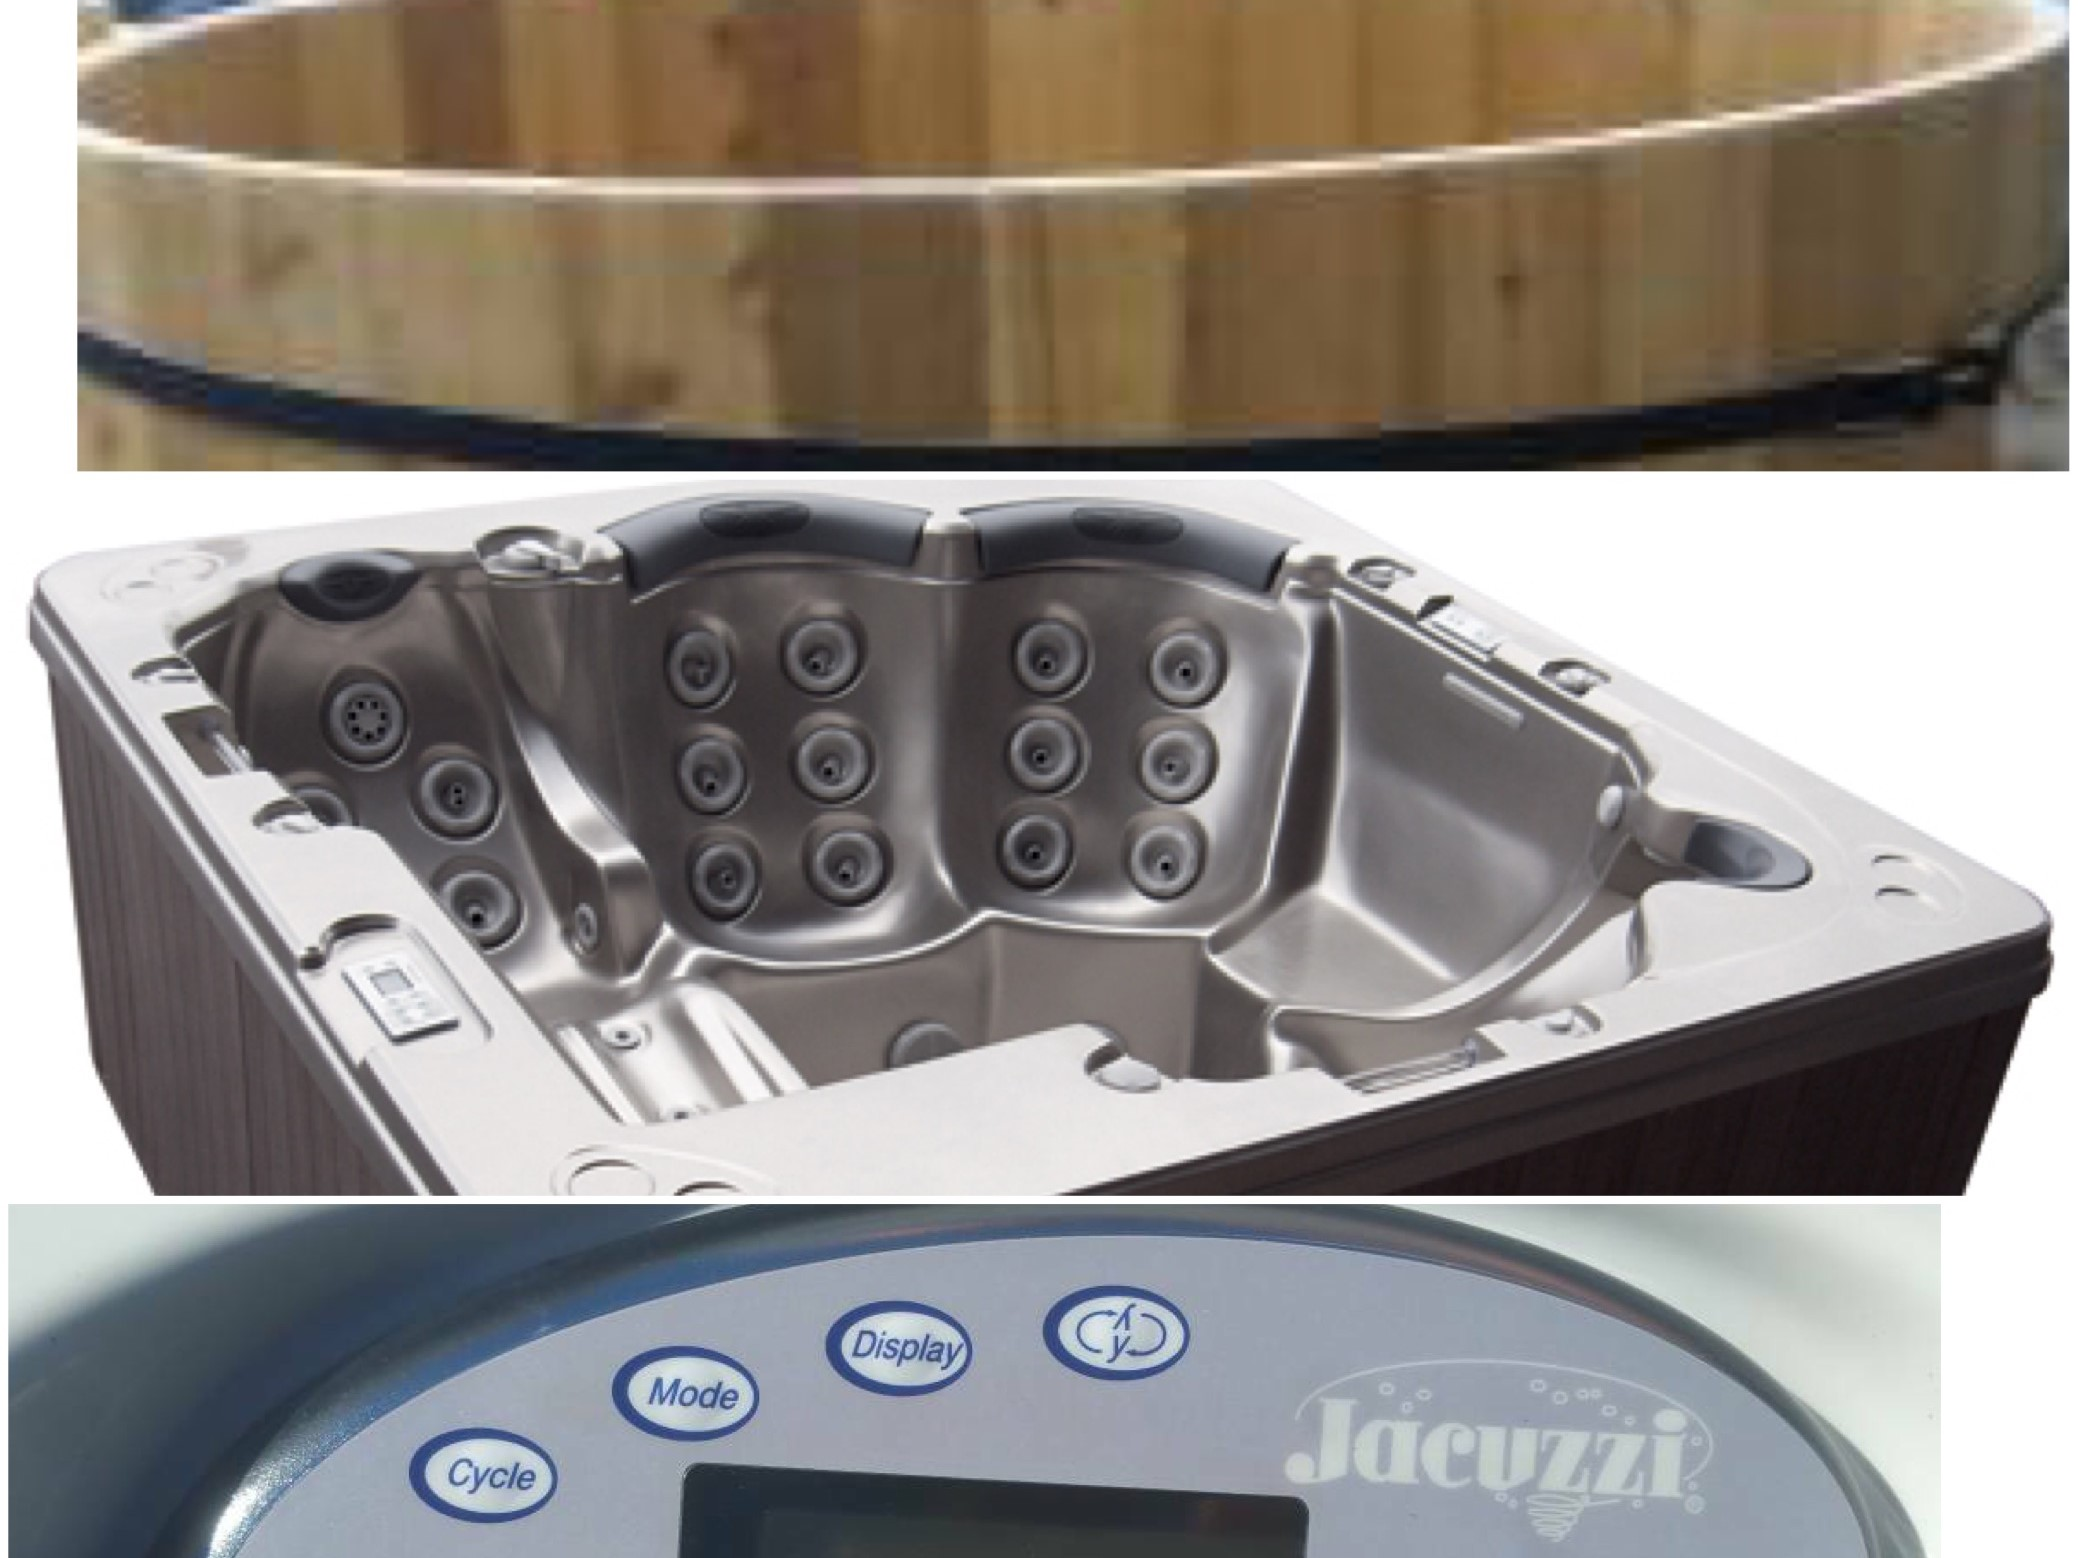 Hot Tub vs. Spa vs. Jacuzzi - Hot Tub Insider